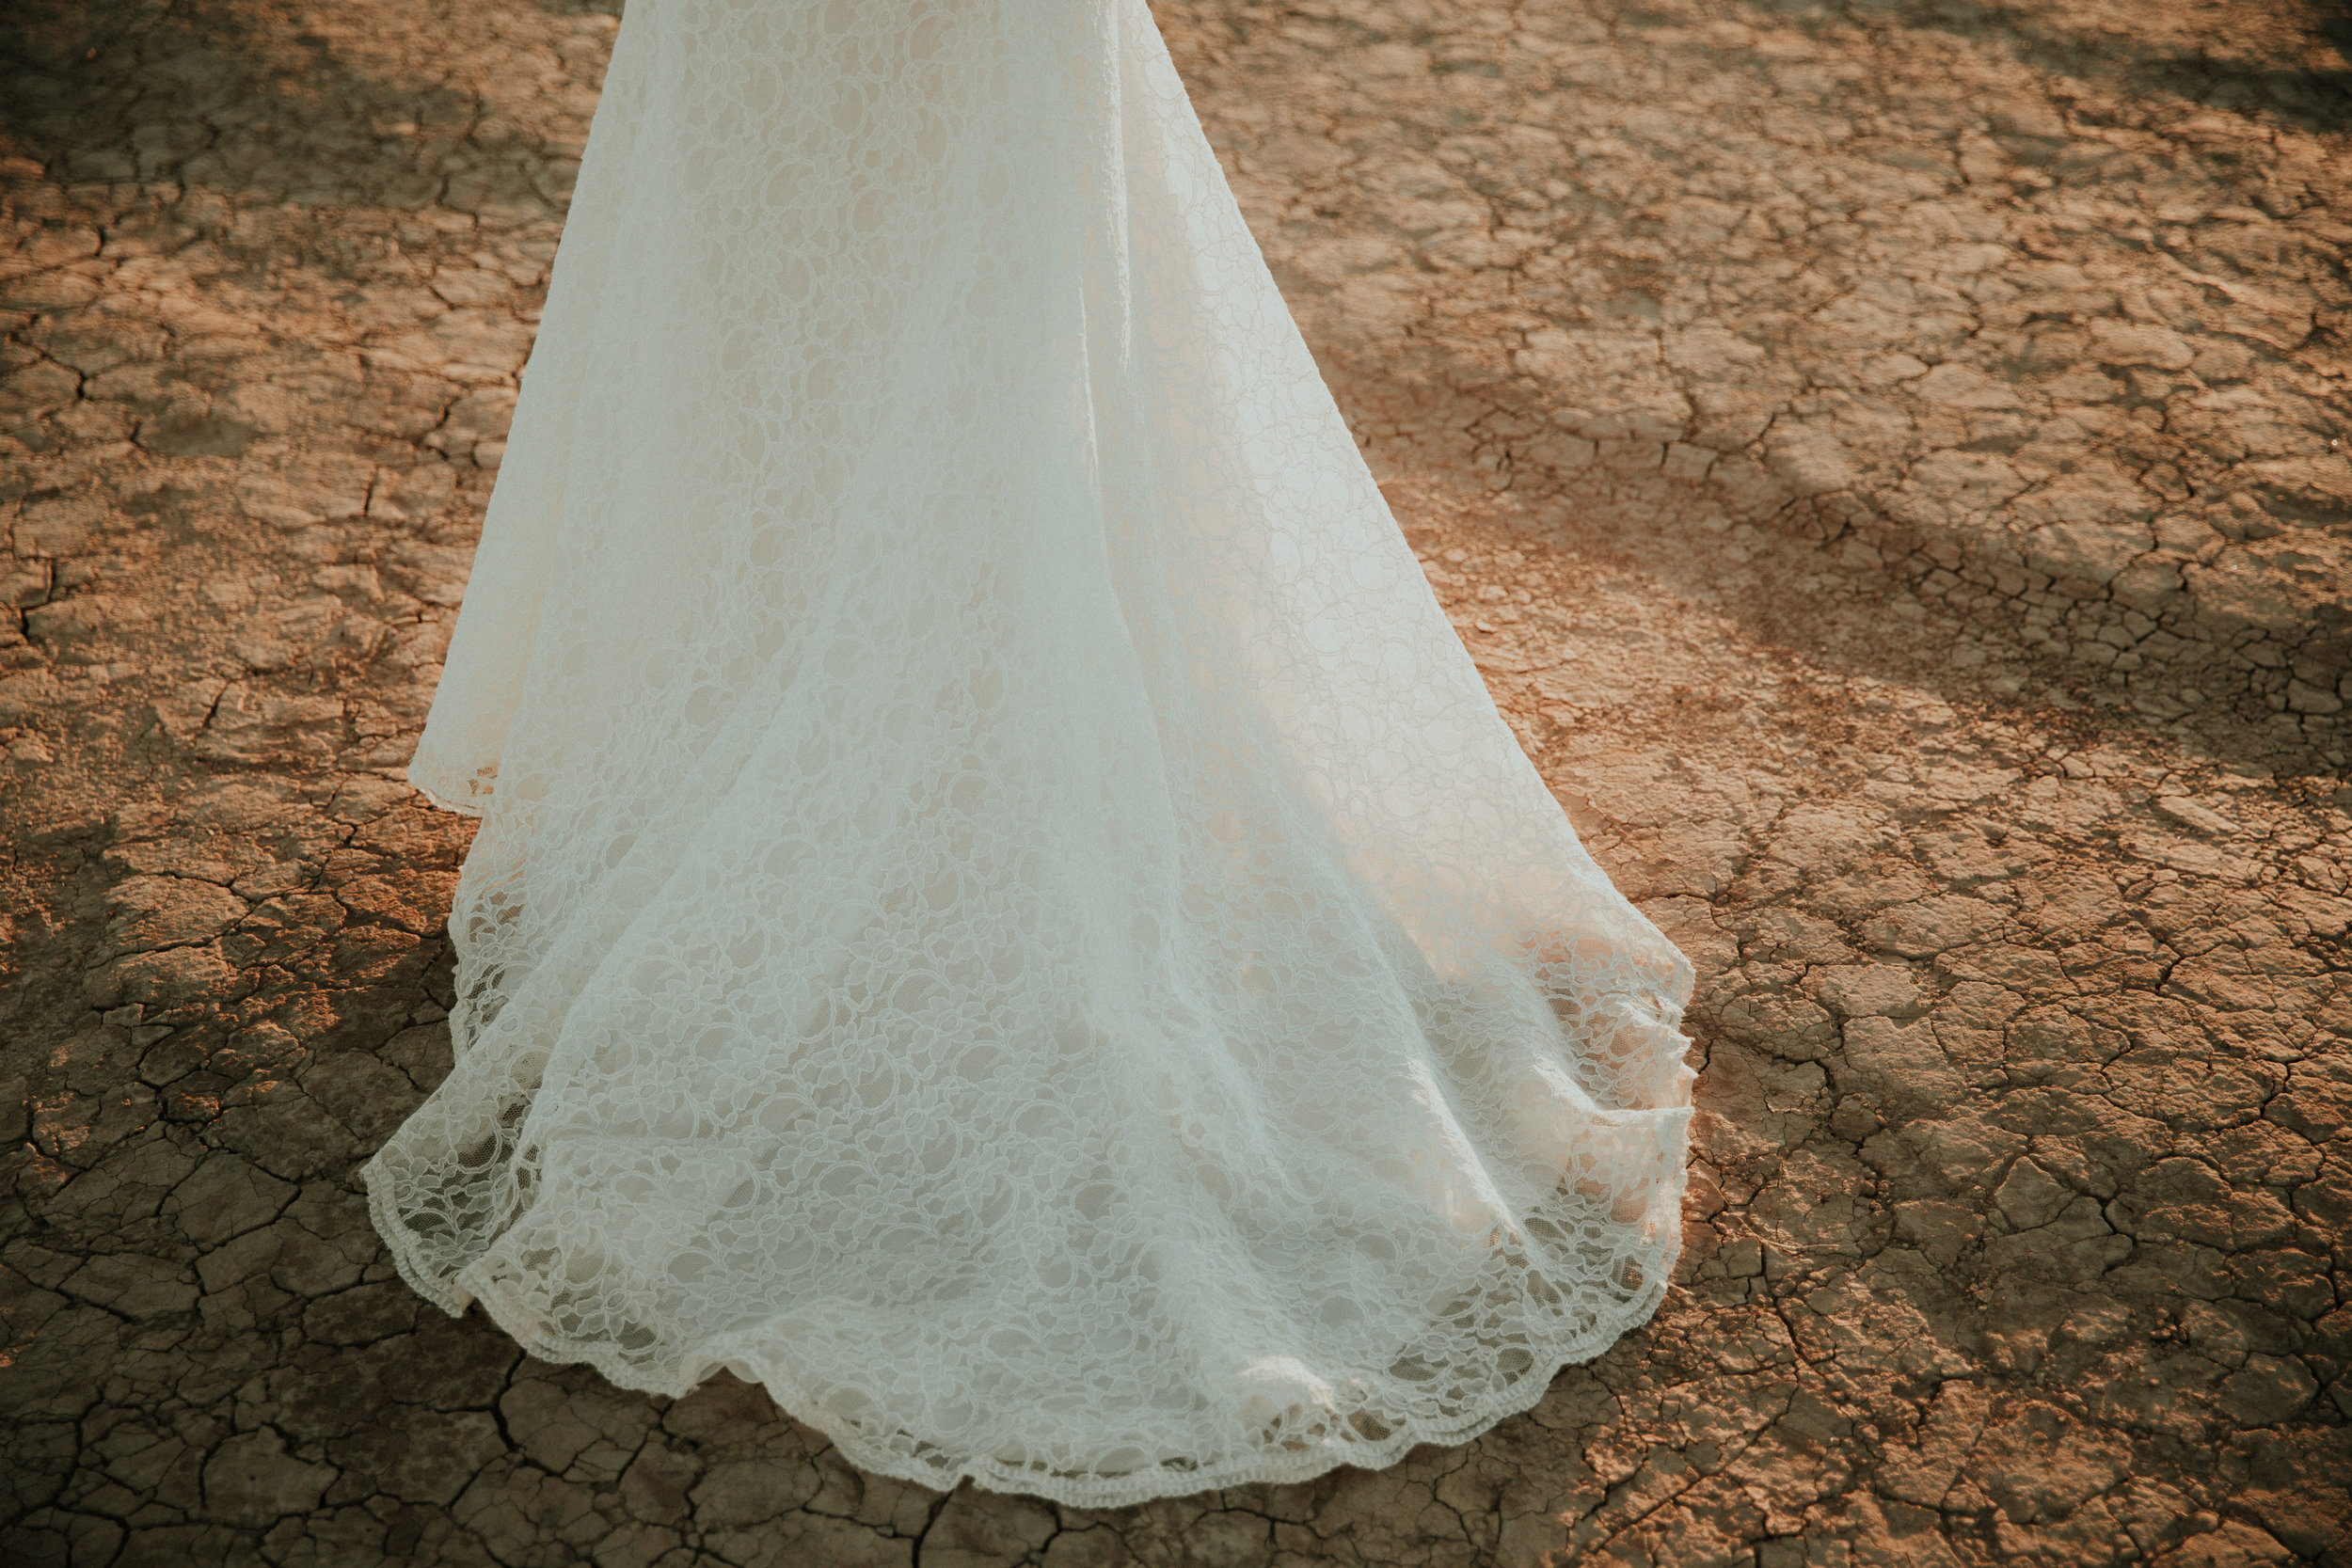 Las Vegas Wedding Photography - Kamra Fuller Photography - Jessica + Daniel - Seattle Wedding Photographer - Detail Shot - The Dress - White Lace - Dry Lake Bed - First Look - Bridals